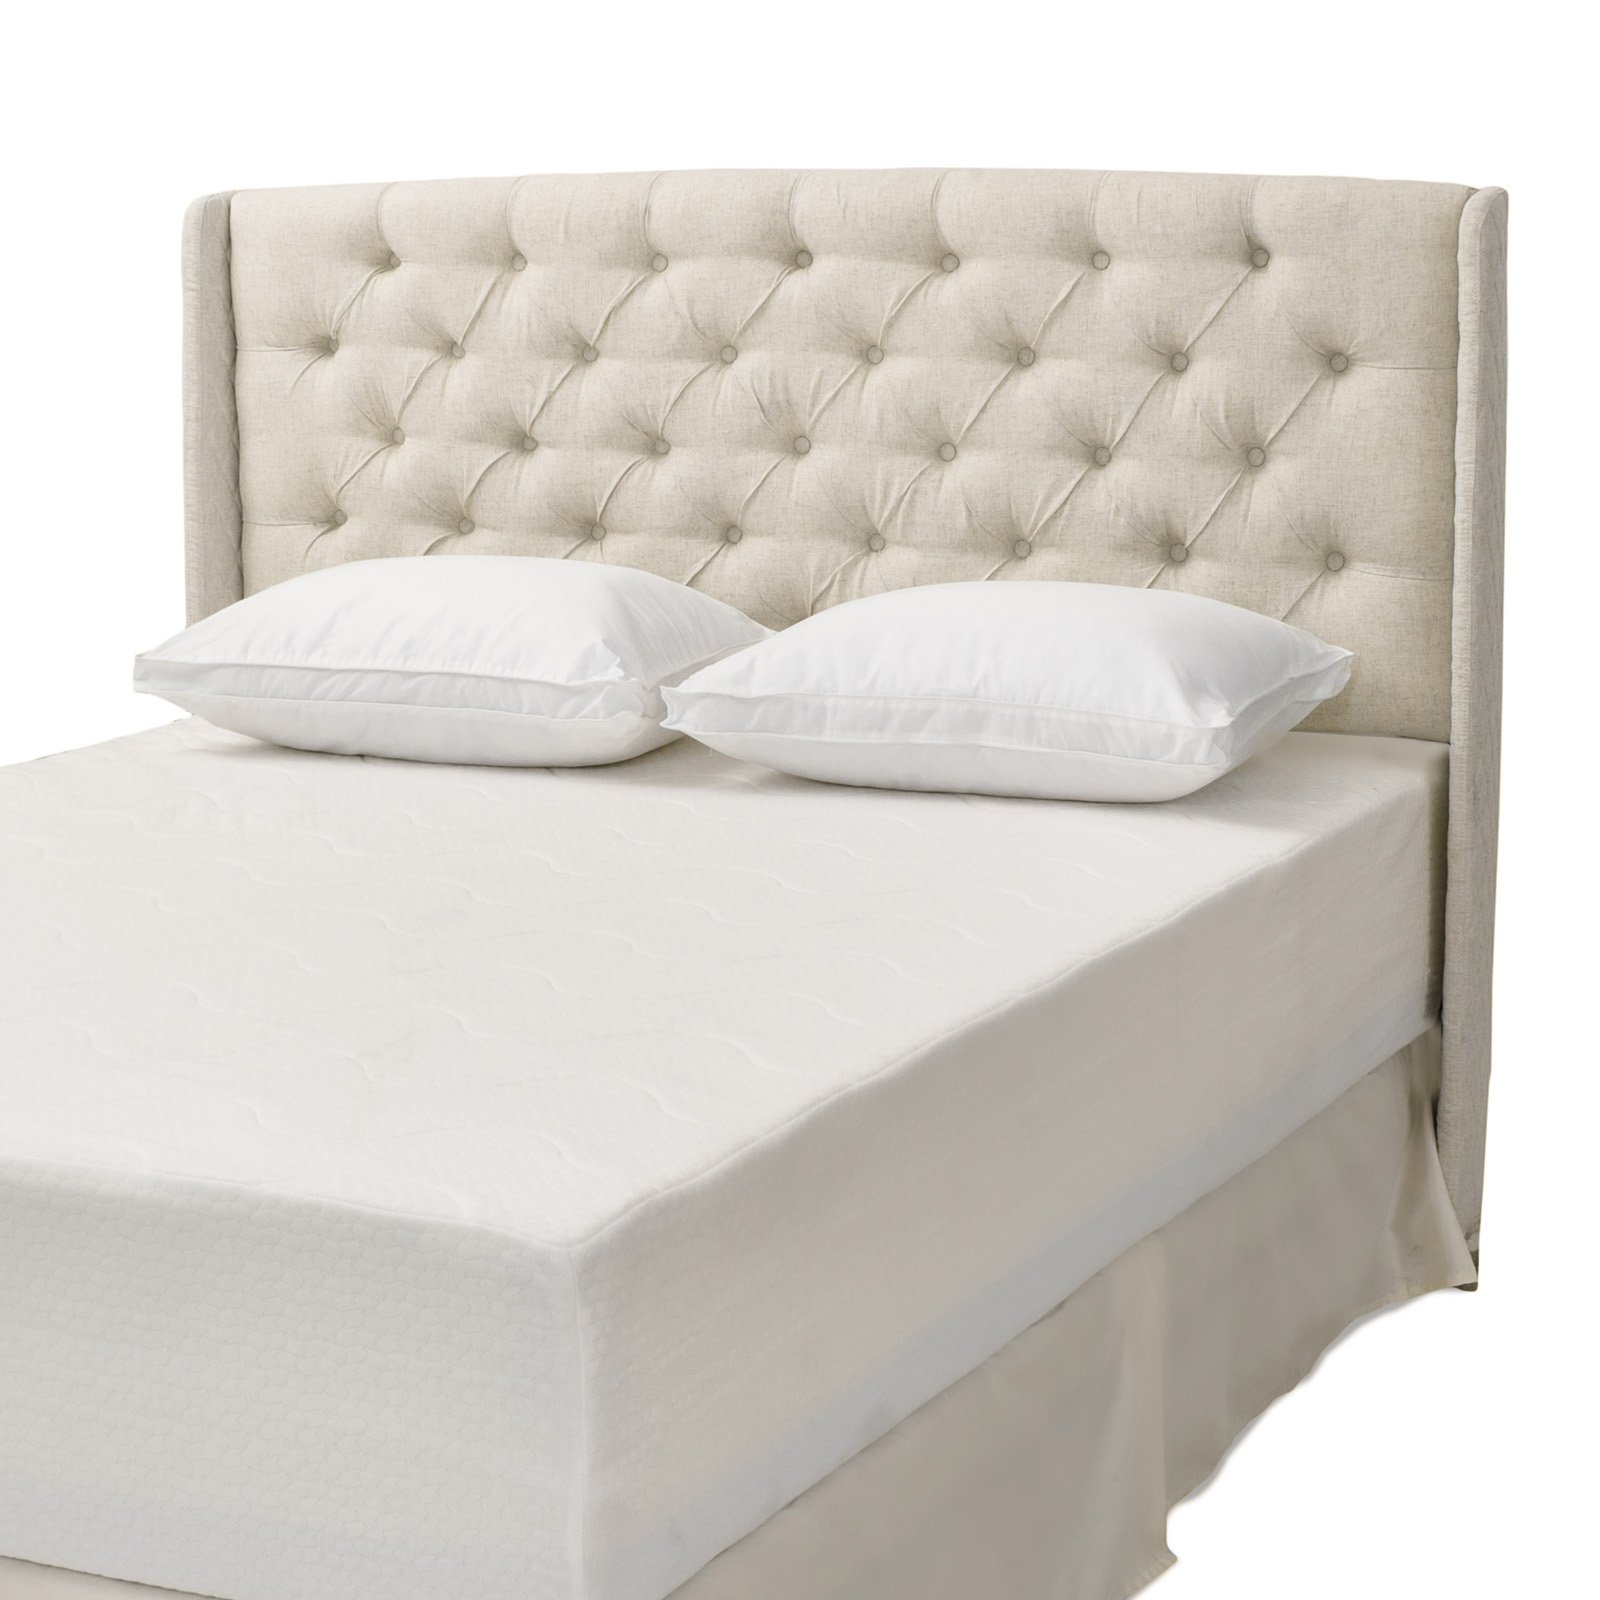 Wicklow Upholstered Headboard